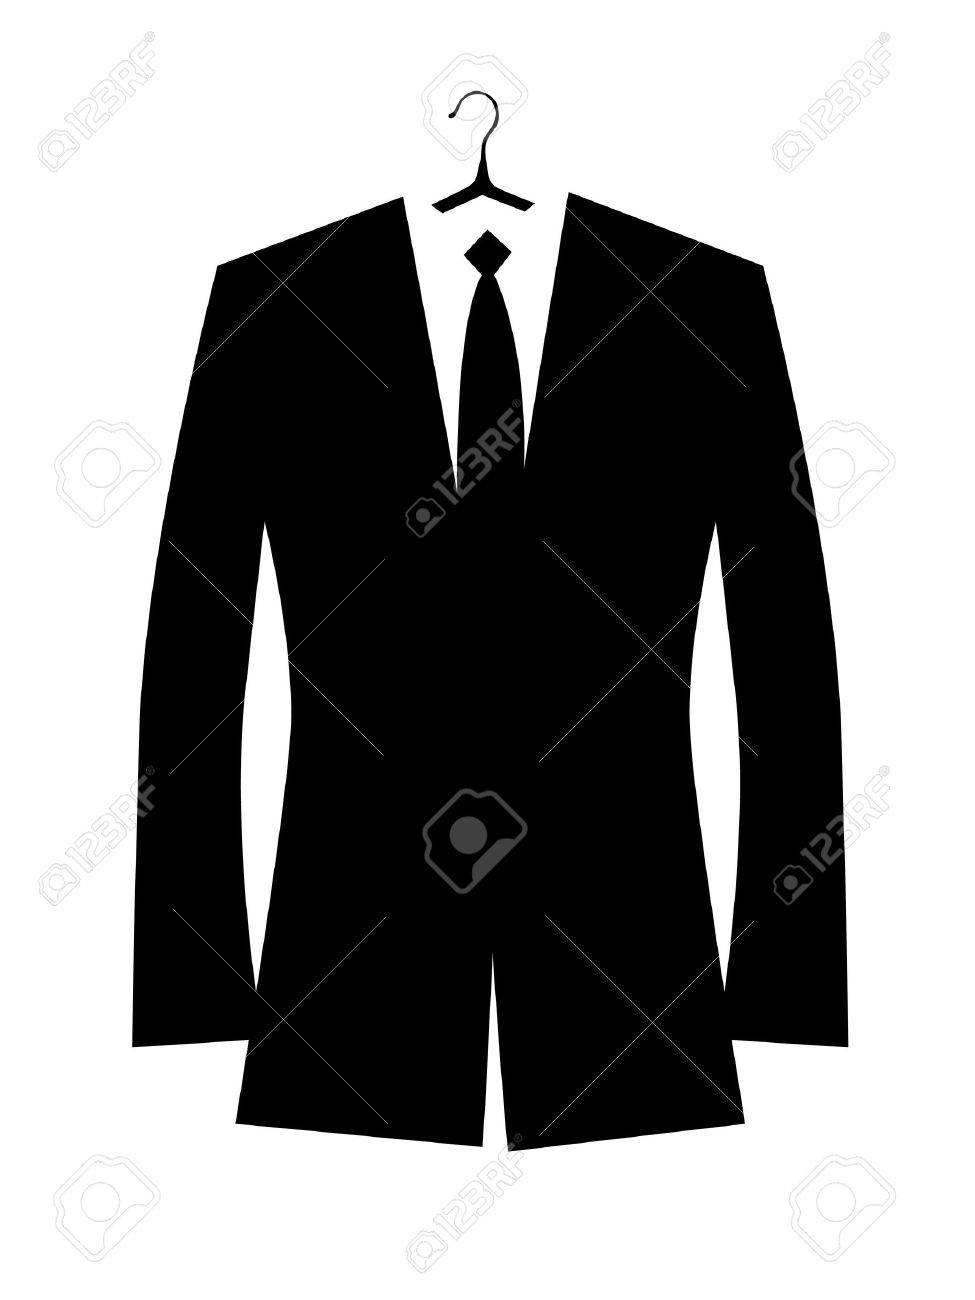 18,114 Formal Clothing Stock Vector Illustration And Royalty Free ...